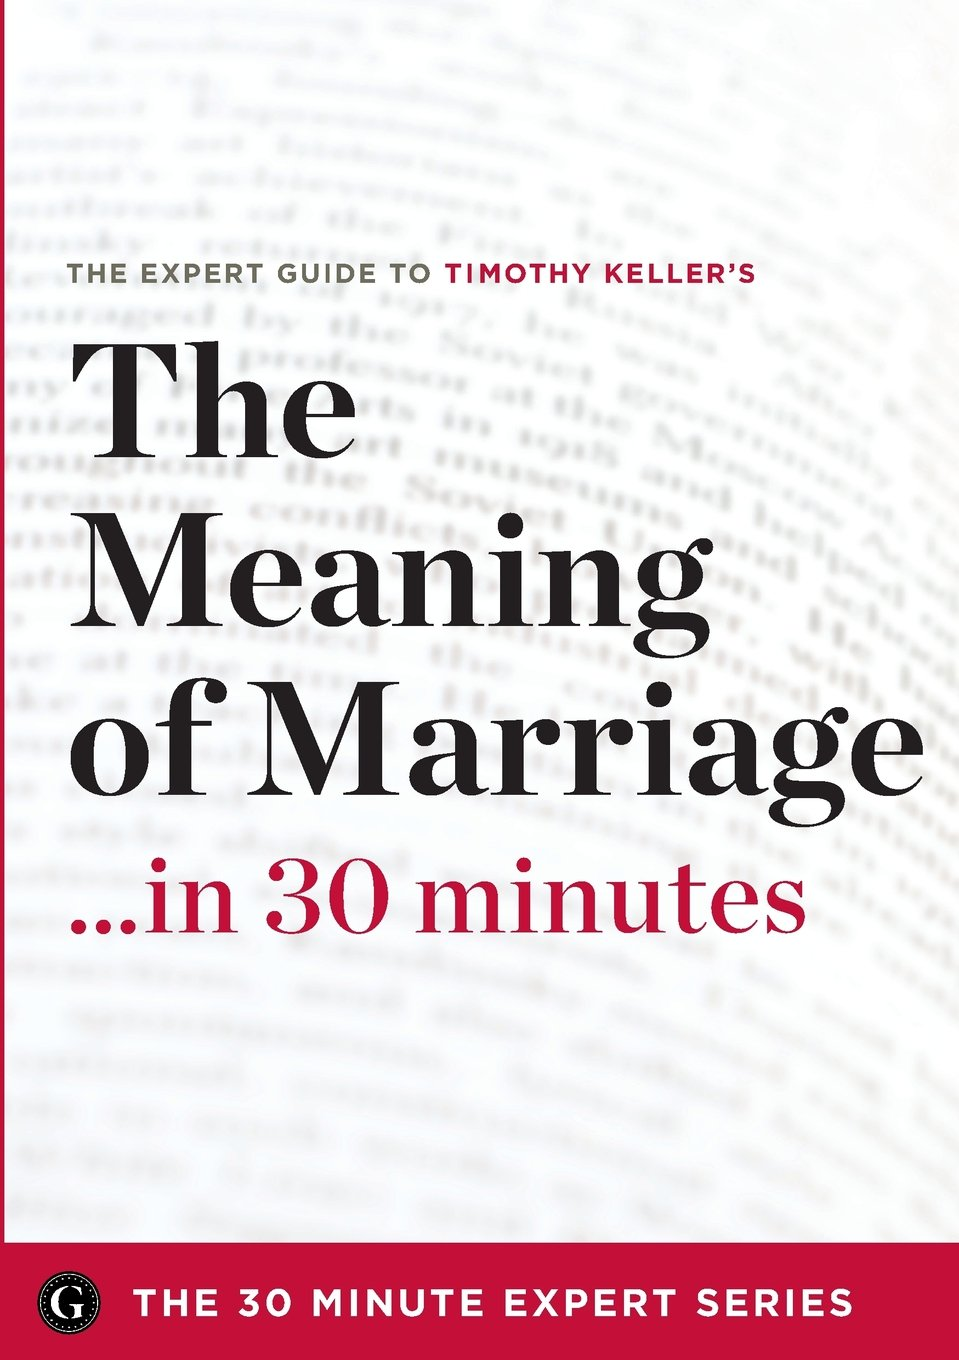 Download The Meaning of Marriage in 30 Minutes - The Expert Guide to Timothy Keller's Critically Acclaimed Book PDF ePub fb2 book